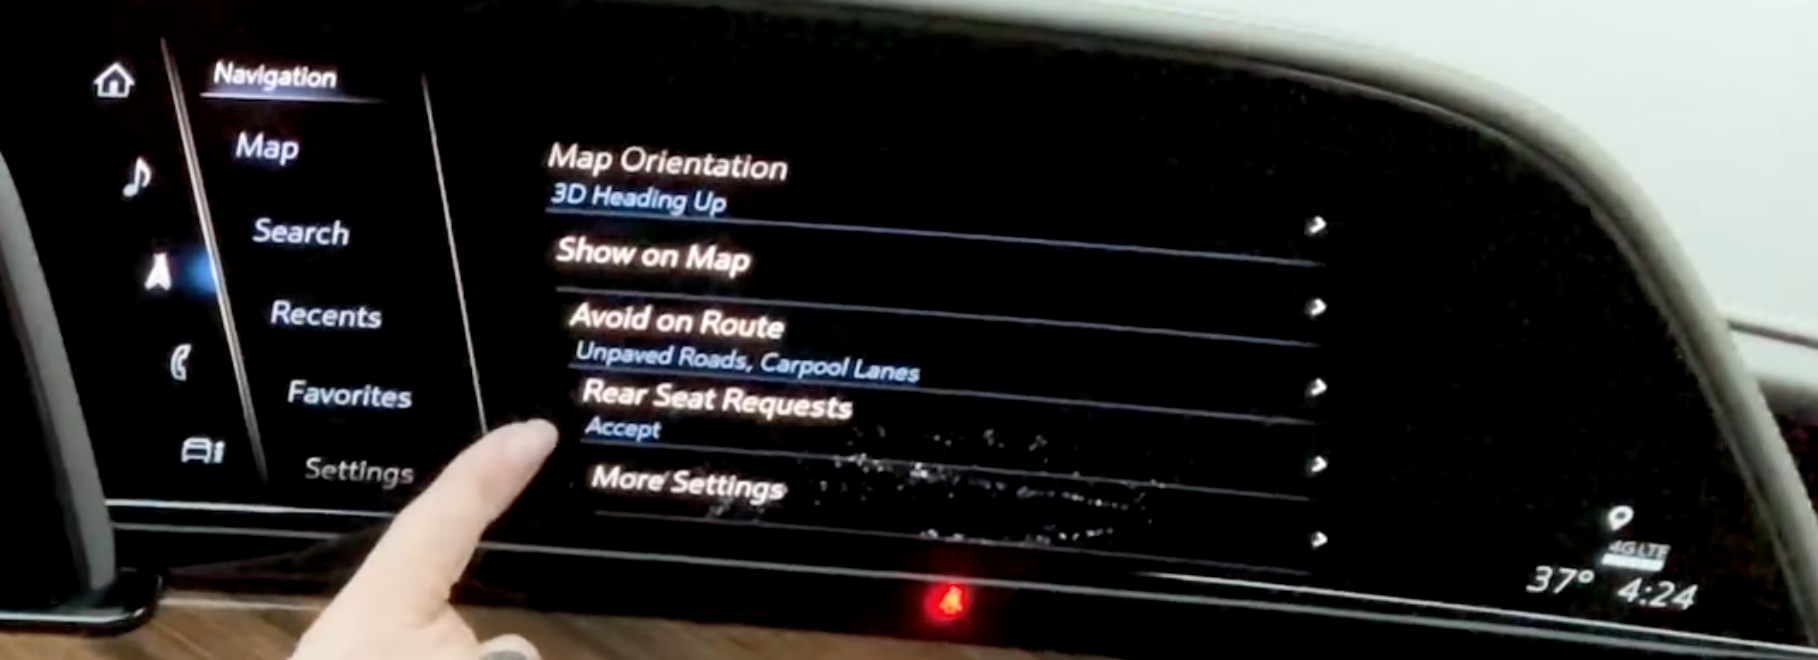 List of various settings for the navigation system such as map and route settings